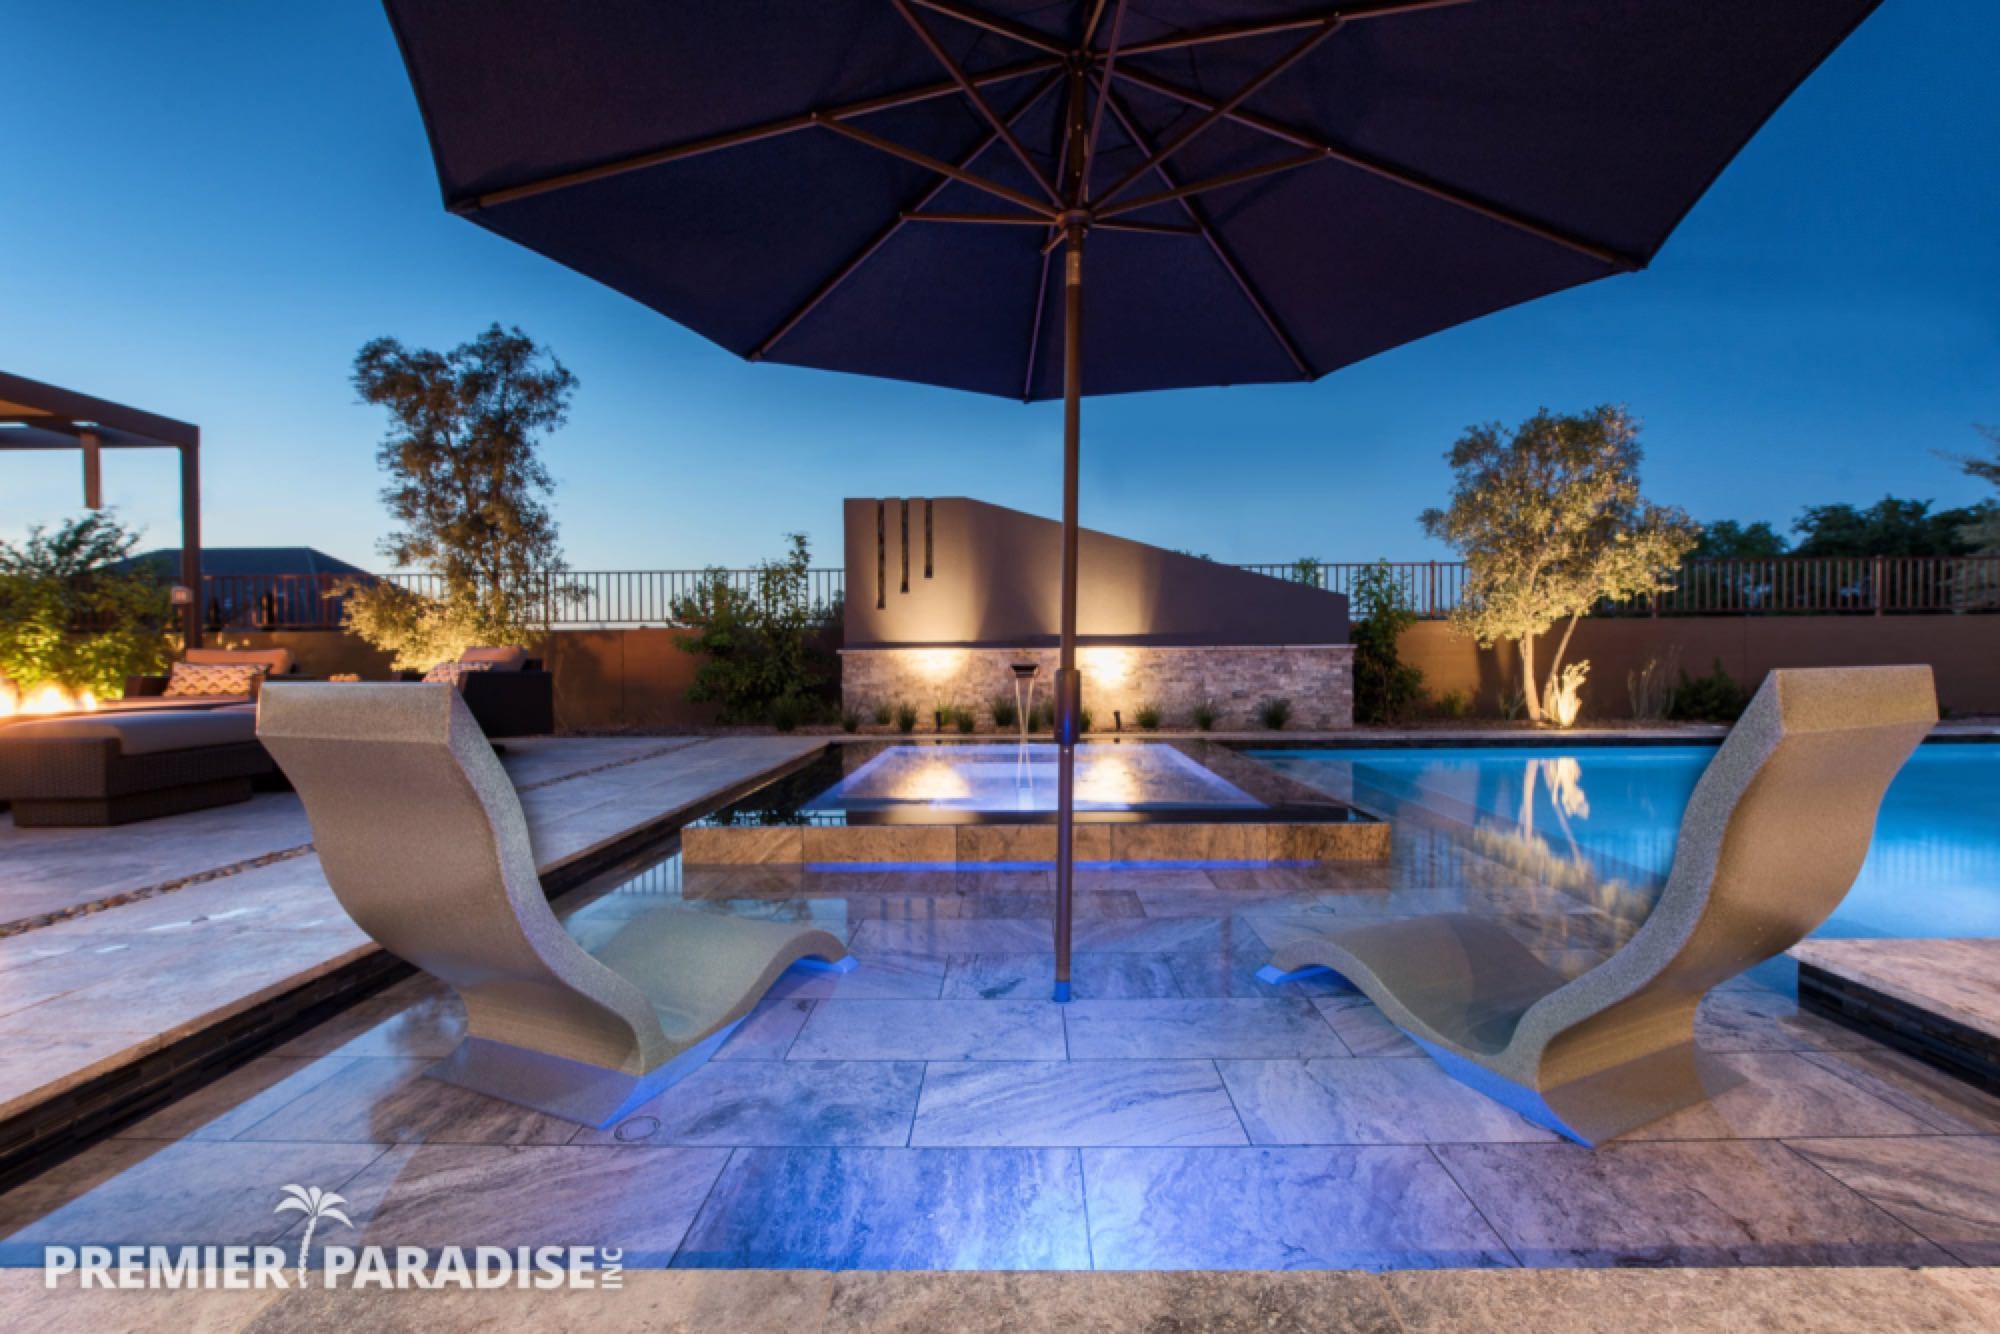 Modern Perimeter Overflow Spa & Luxury Outdoor Living ... on Outdoor Living Spa id=28350